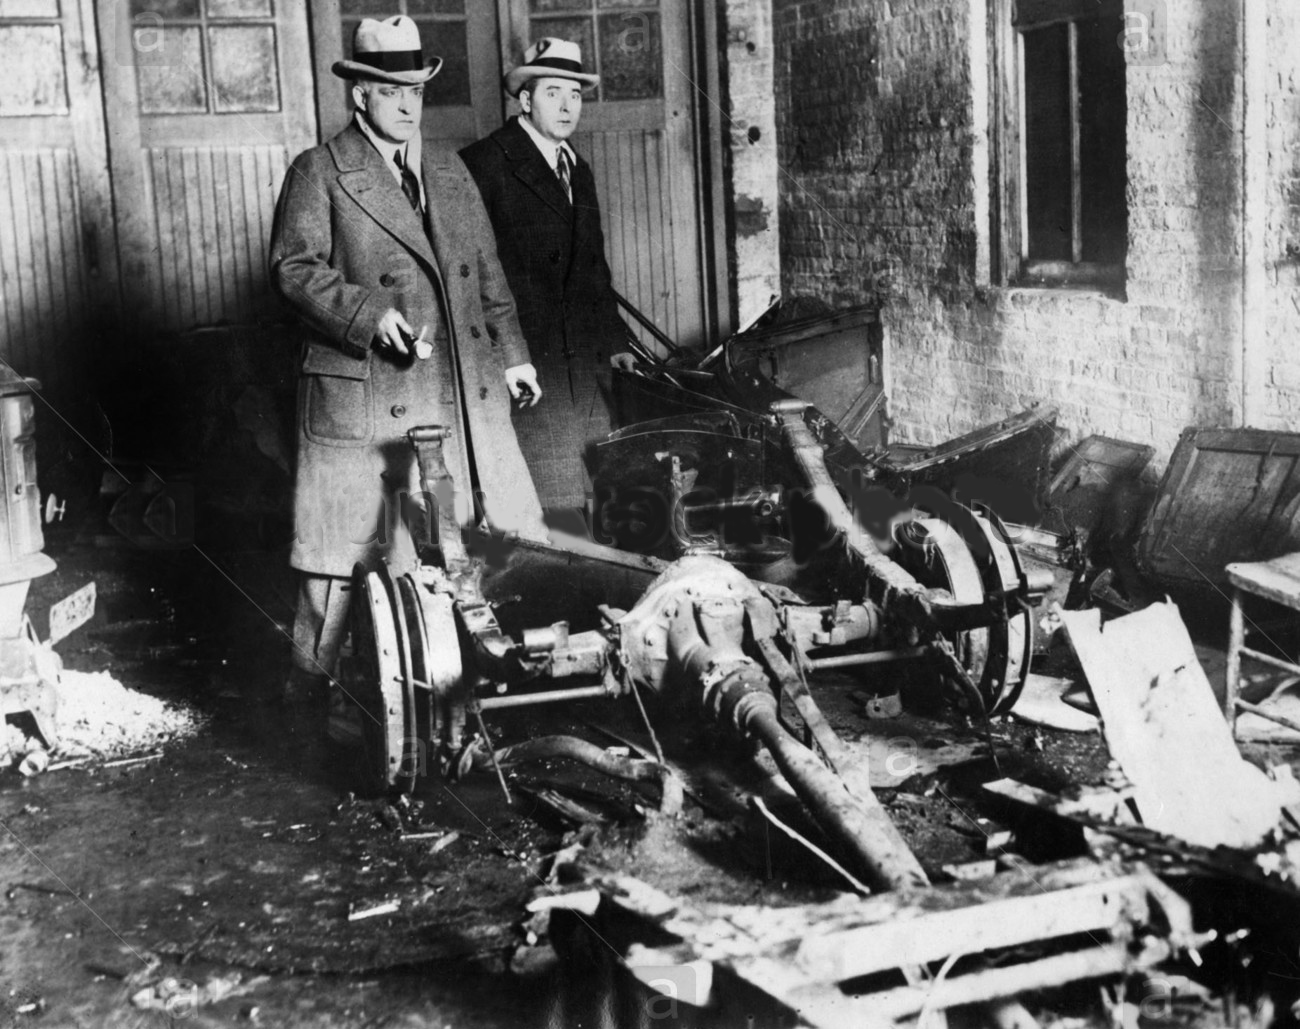 REMNANTS OF AUTO THOUGHT TO BE GARAGE MASSACRE DEATH CAR. Chief Of  Detectives John Egan (left) And Capt. Daniel Gilbert Looking Over Burned  And Battered ...